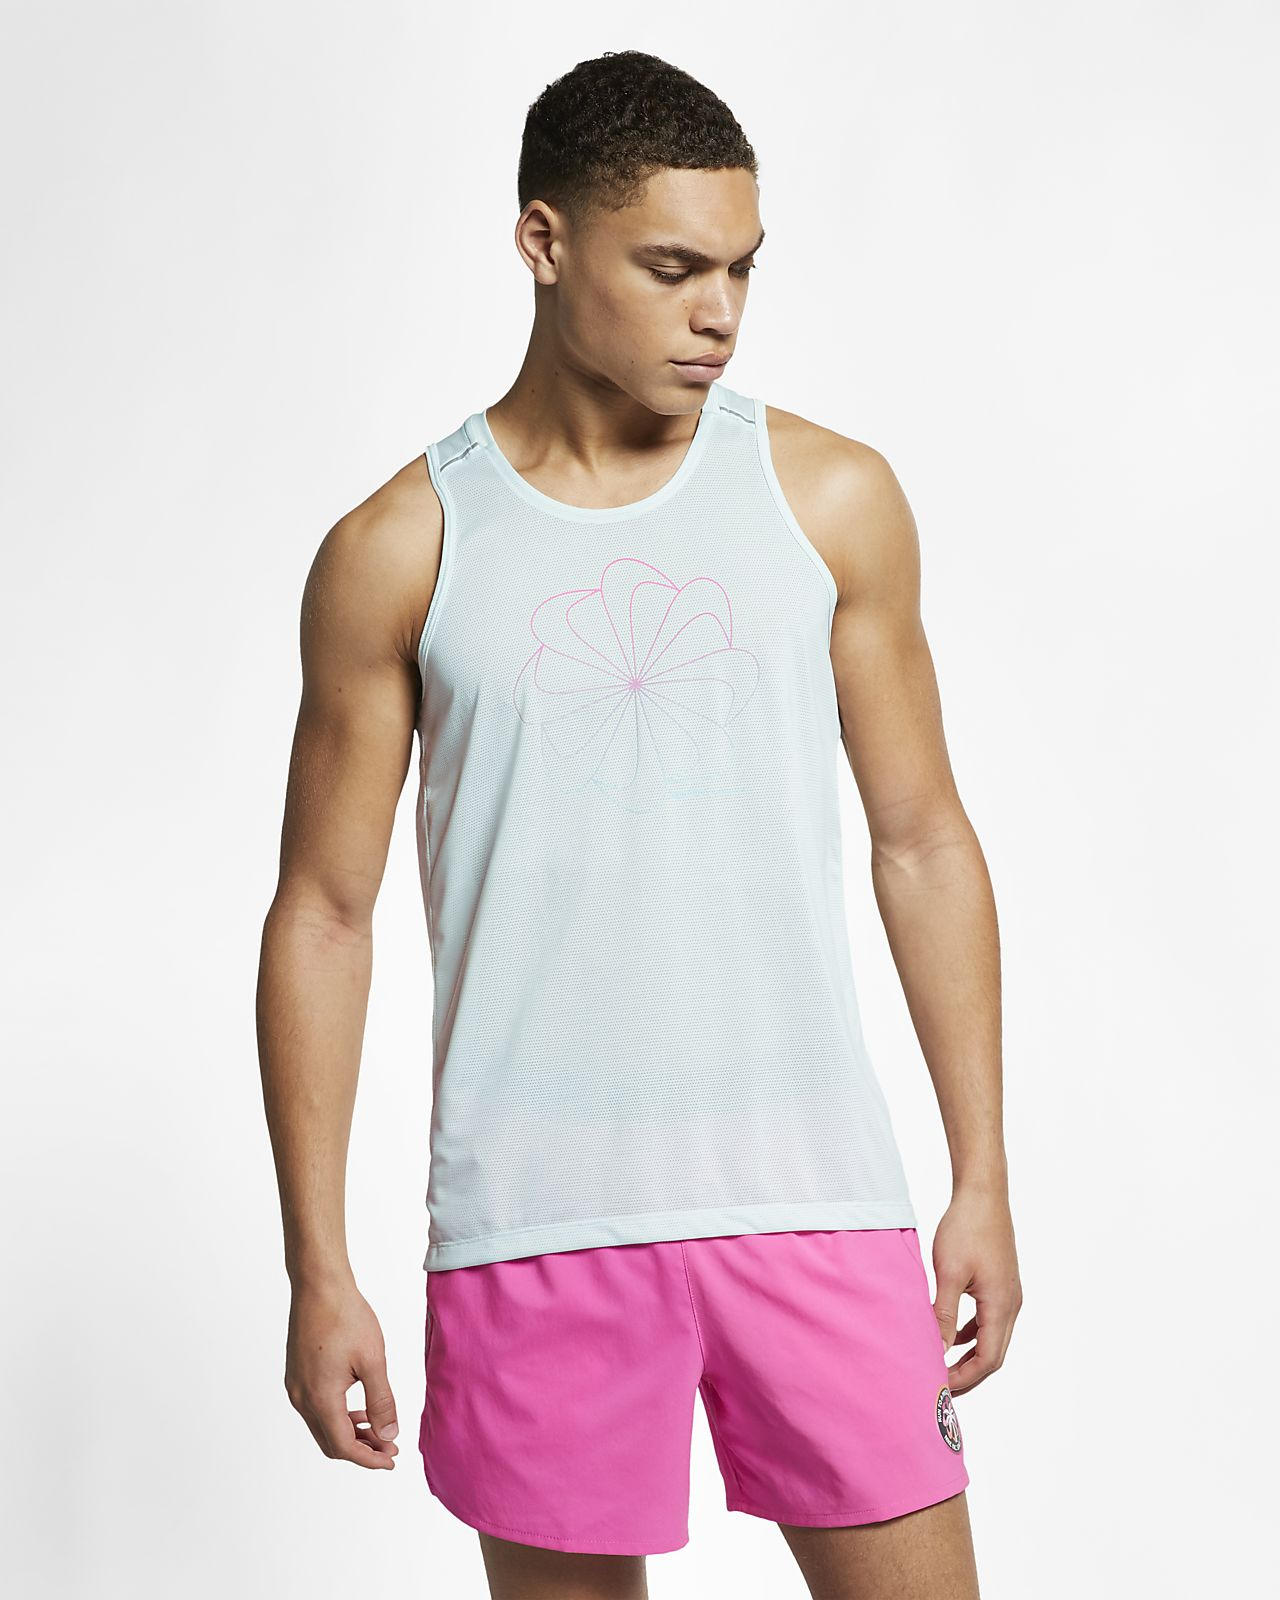 Nike Miler Men's Graphic Running Tank